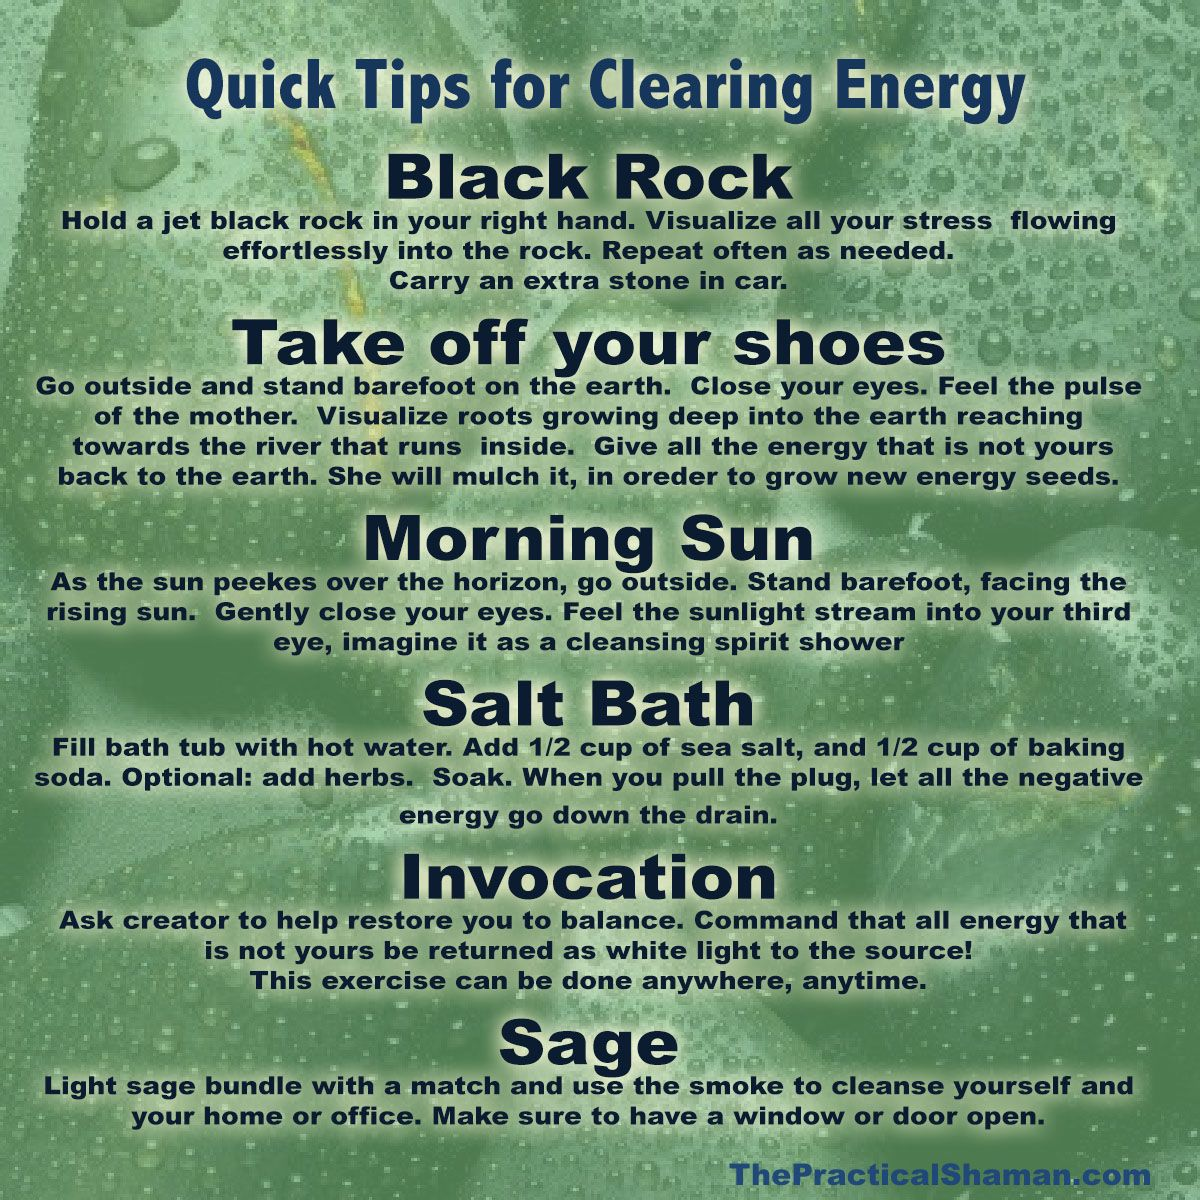 Quick tips for Clearing Energy | Smudging | Book of shadows, Mind